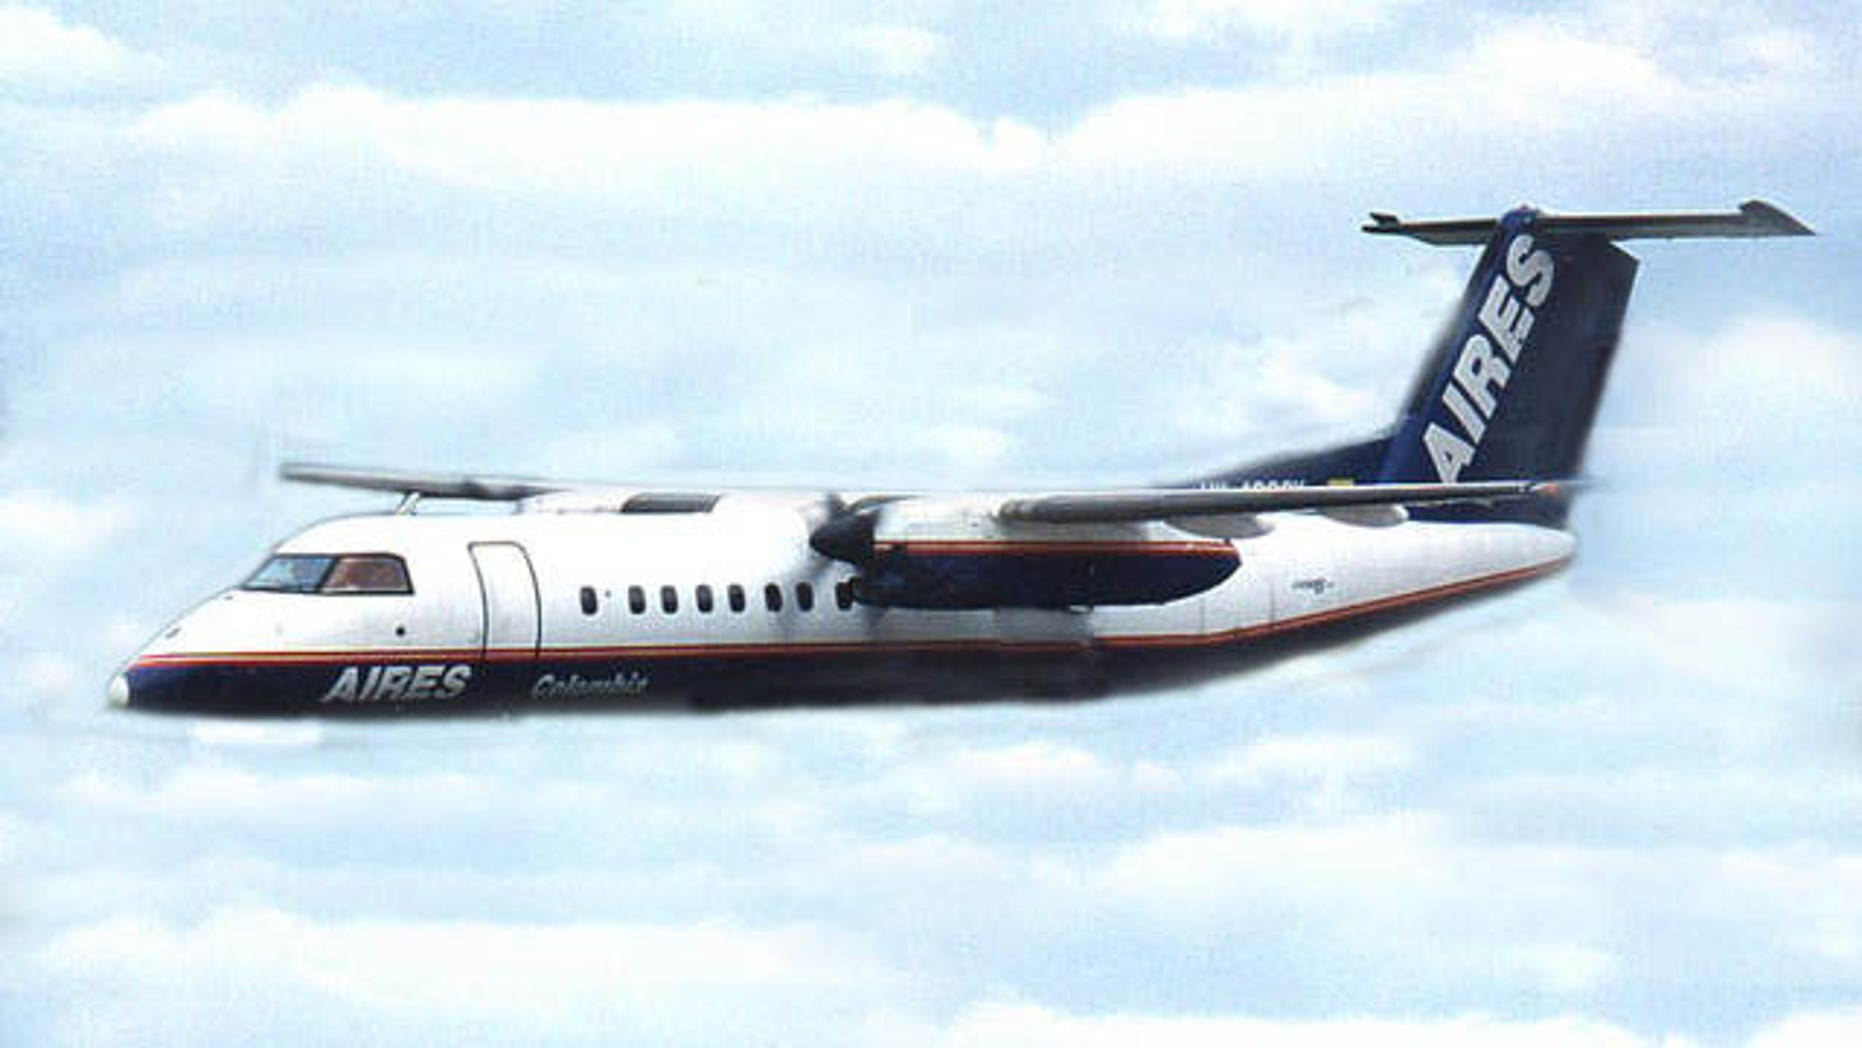 A Dash 8 aircraft like the one that crashed in Colombia Saturday, killing 4 people and injuring 2. (AP Photo)